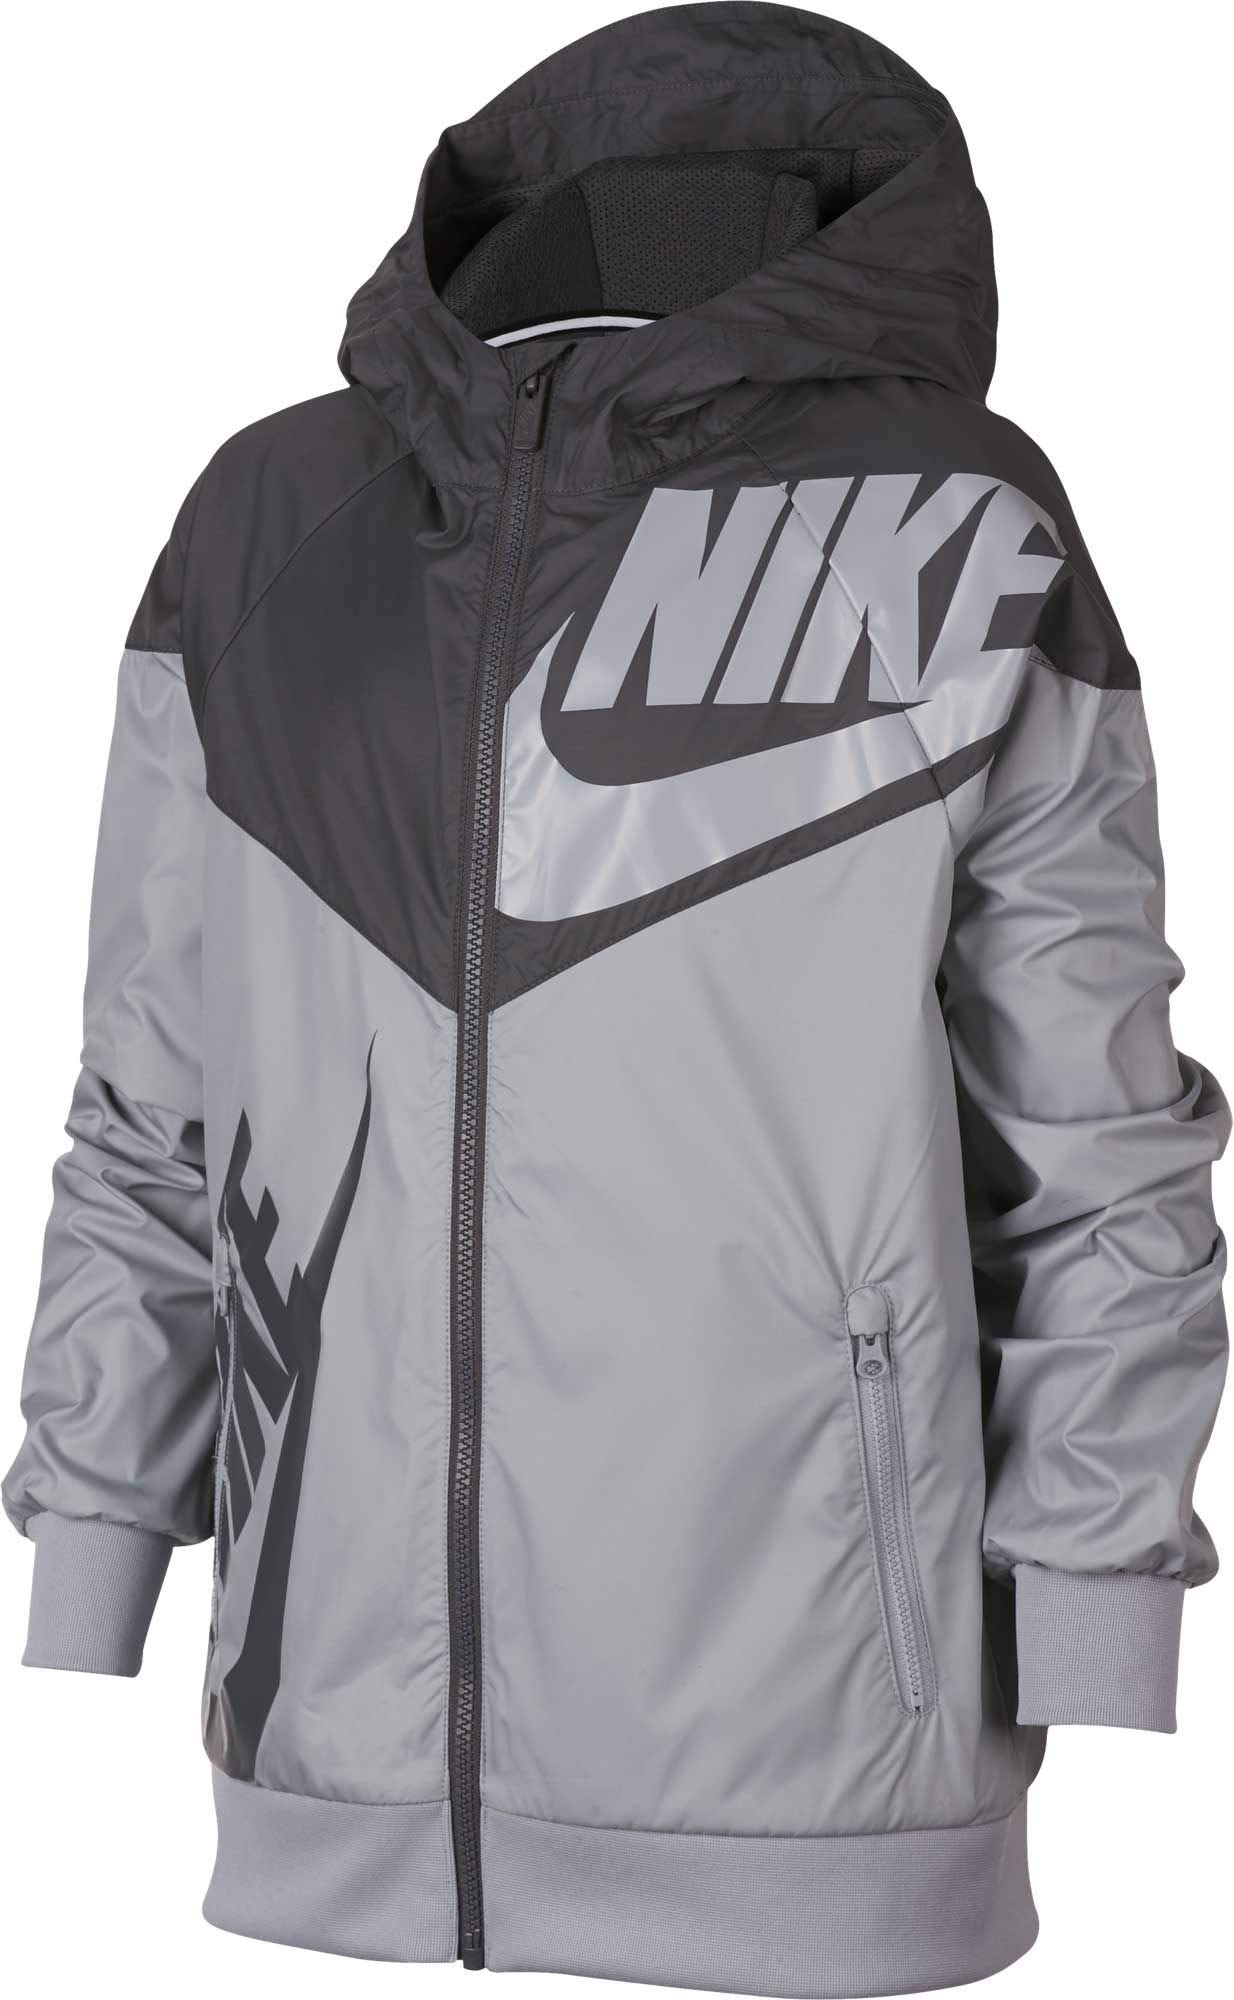 Nike Boy's Sportswear Graphic Windrunner Jacket (Gray, X-Small) by Nike (Image #1)